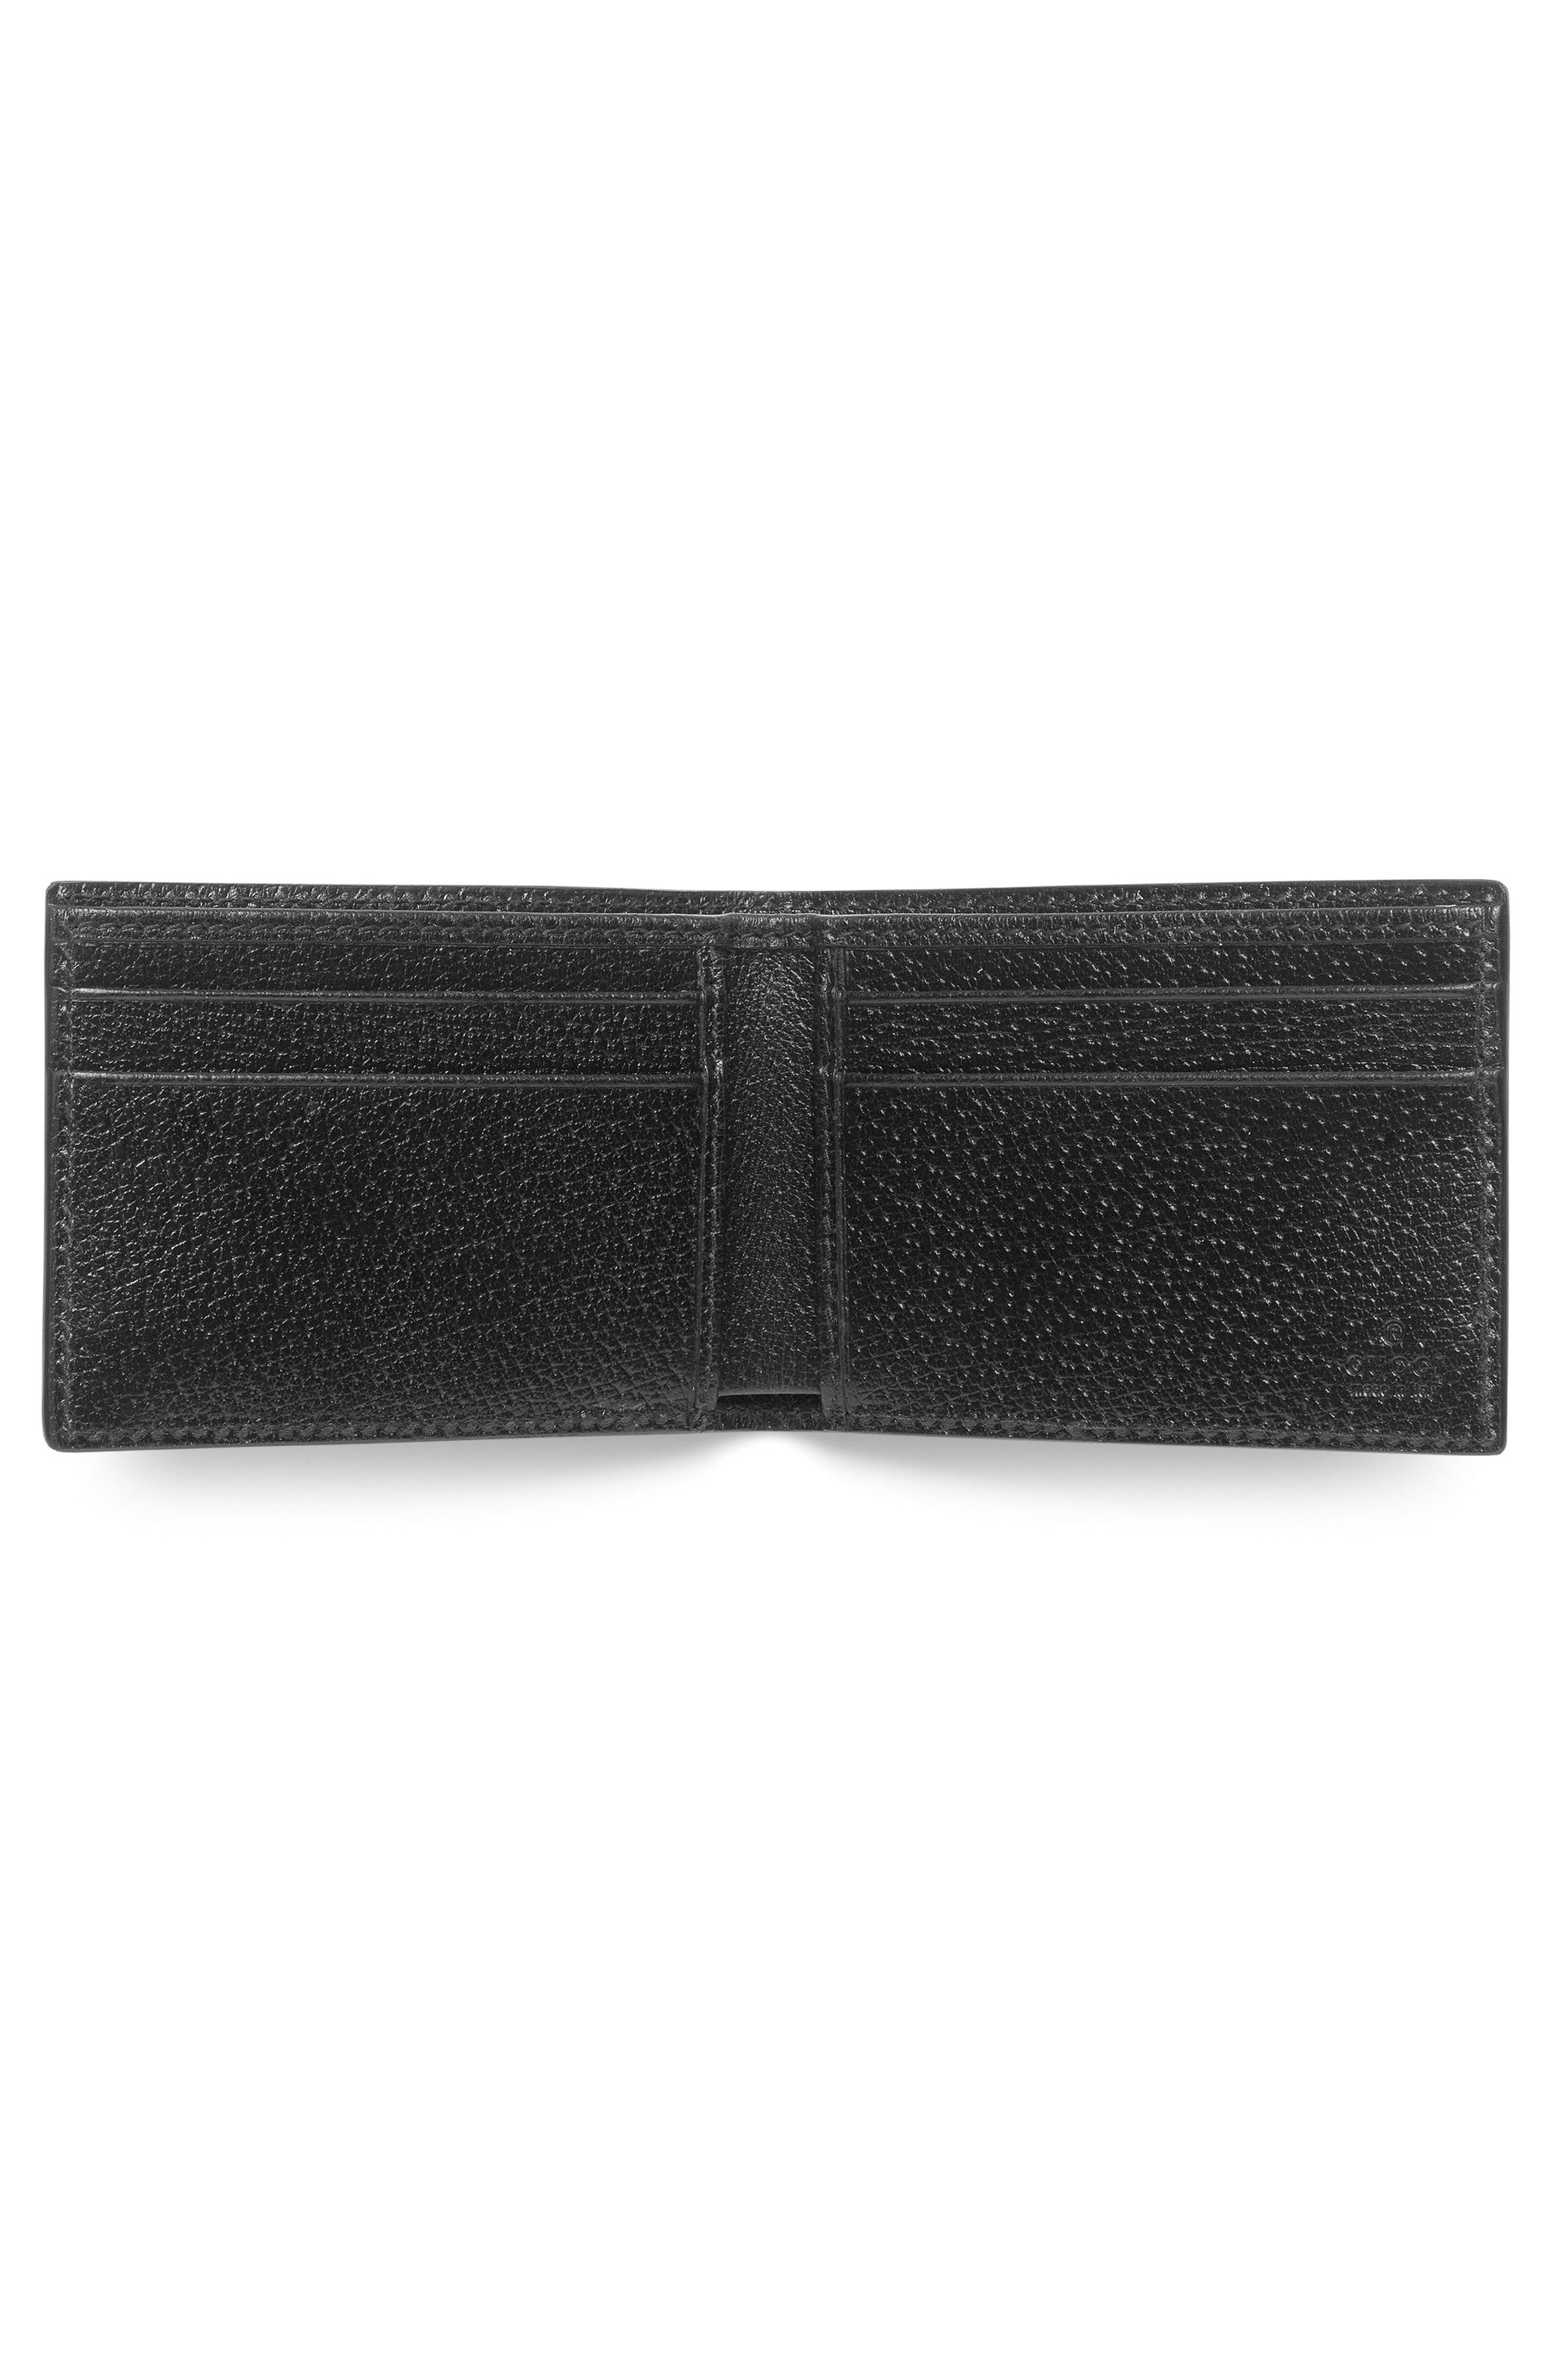 Marmont Leather Wallet,                             Alternate thumbnail 5, color,